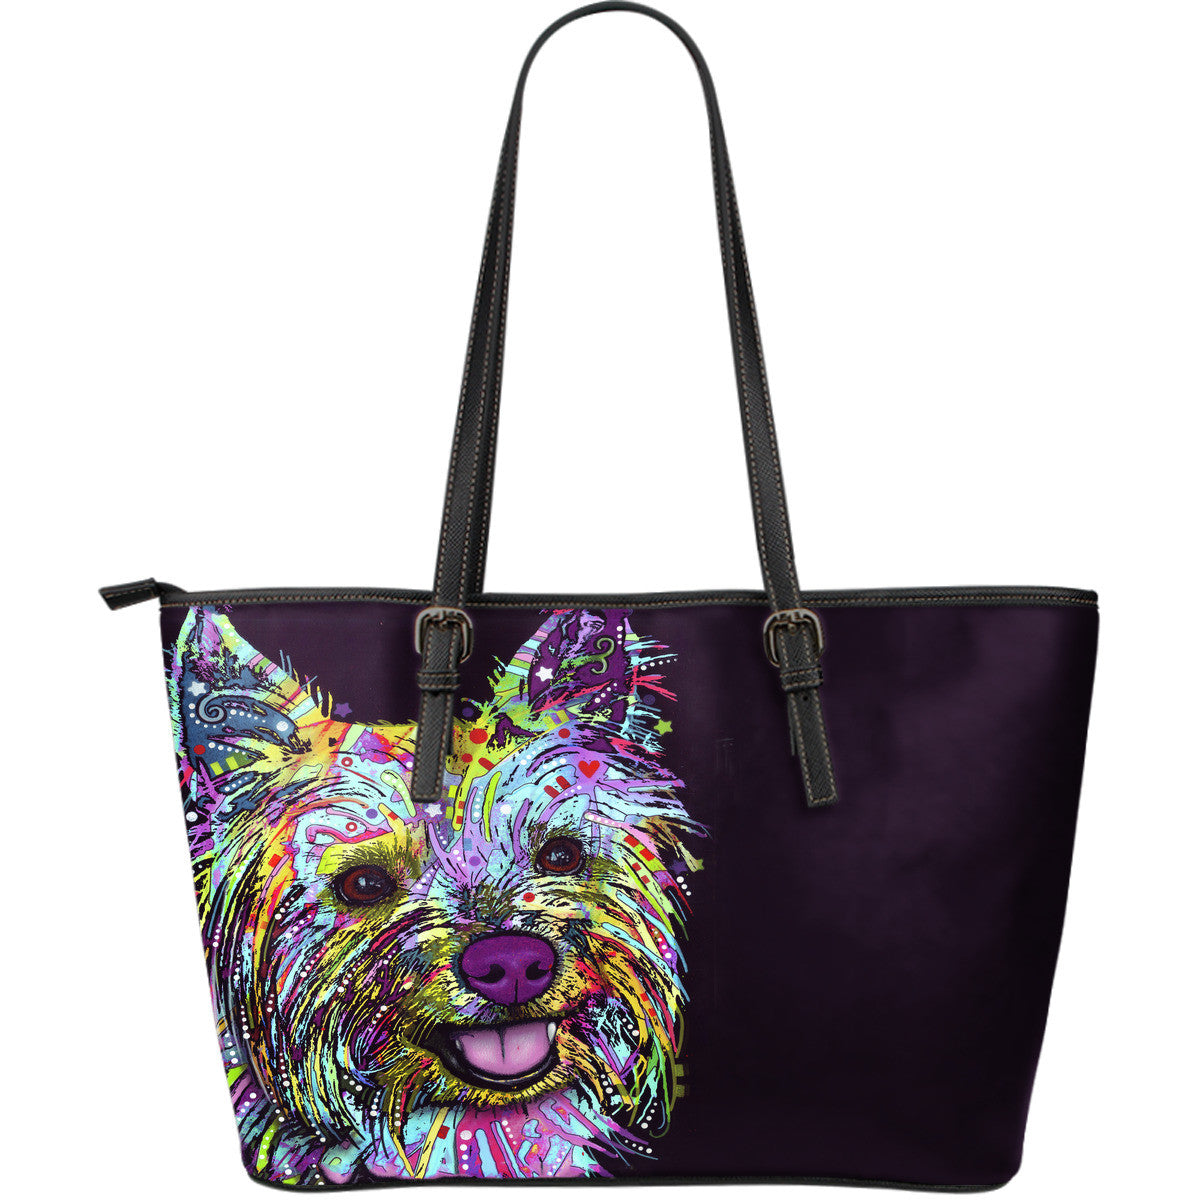 Yorkie Leather Totes (Large)